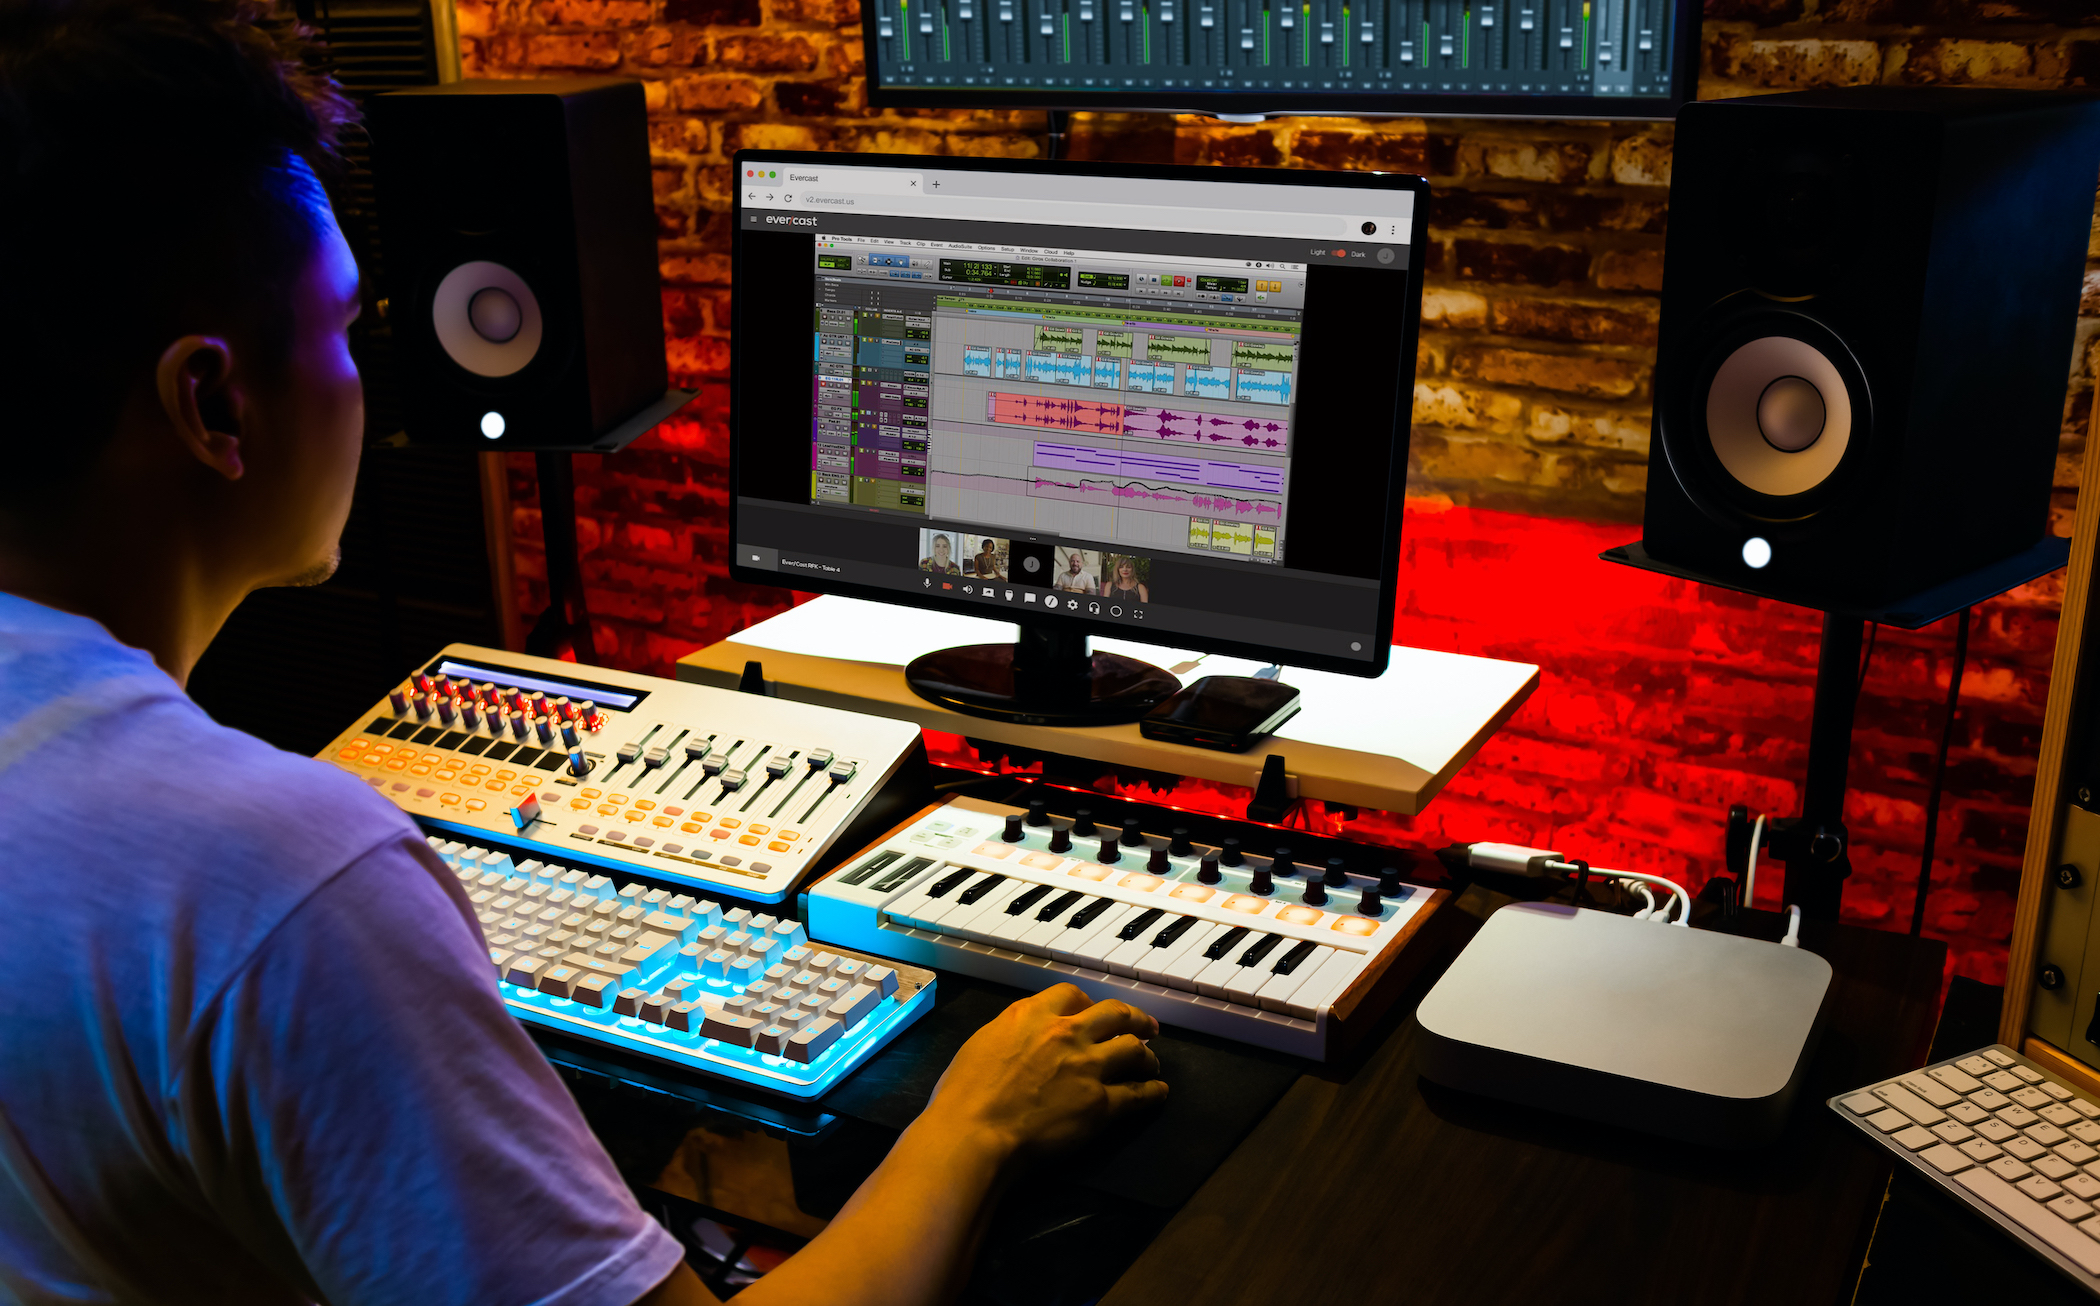 Video conference while collaborating on music production. Stream Pro Tools or any other software with full-spectrum audio and ultra low latency. 5.1 surround sound also available.